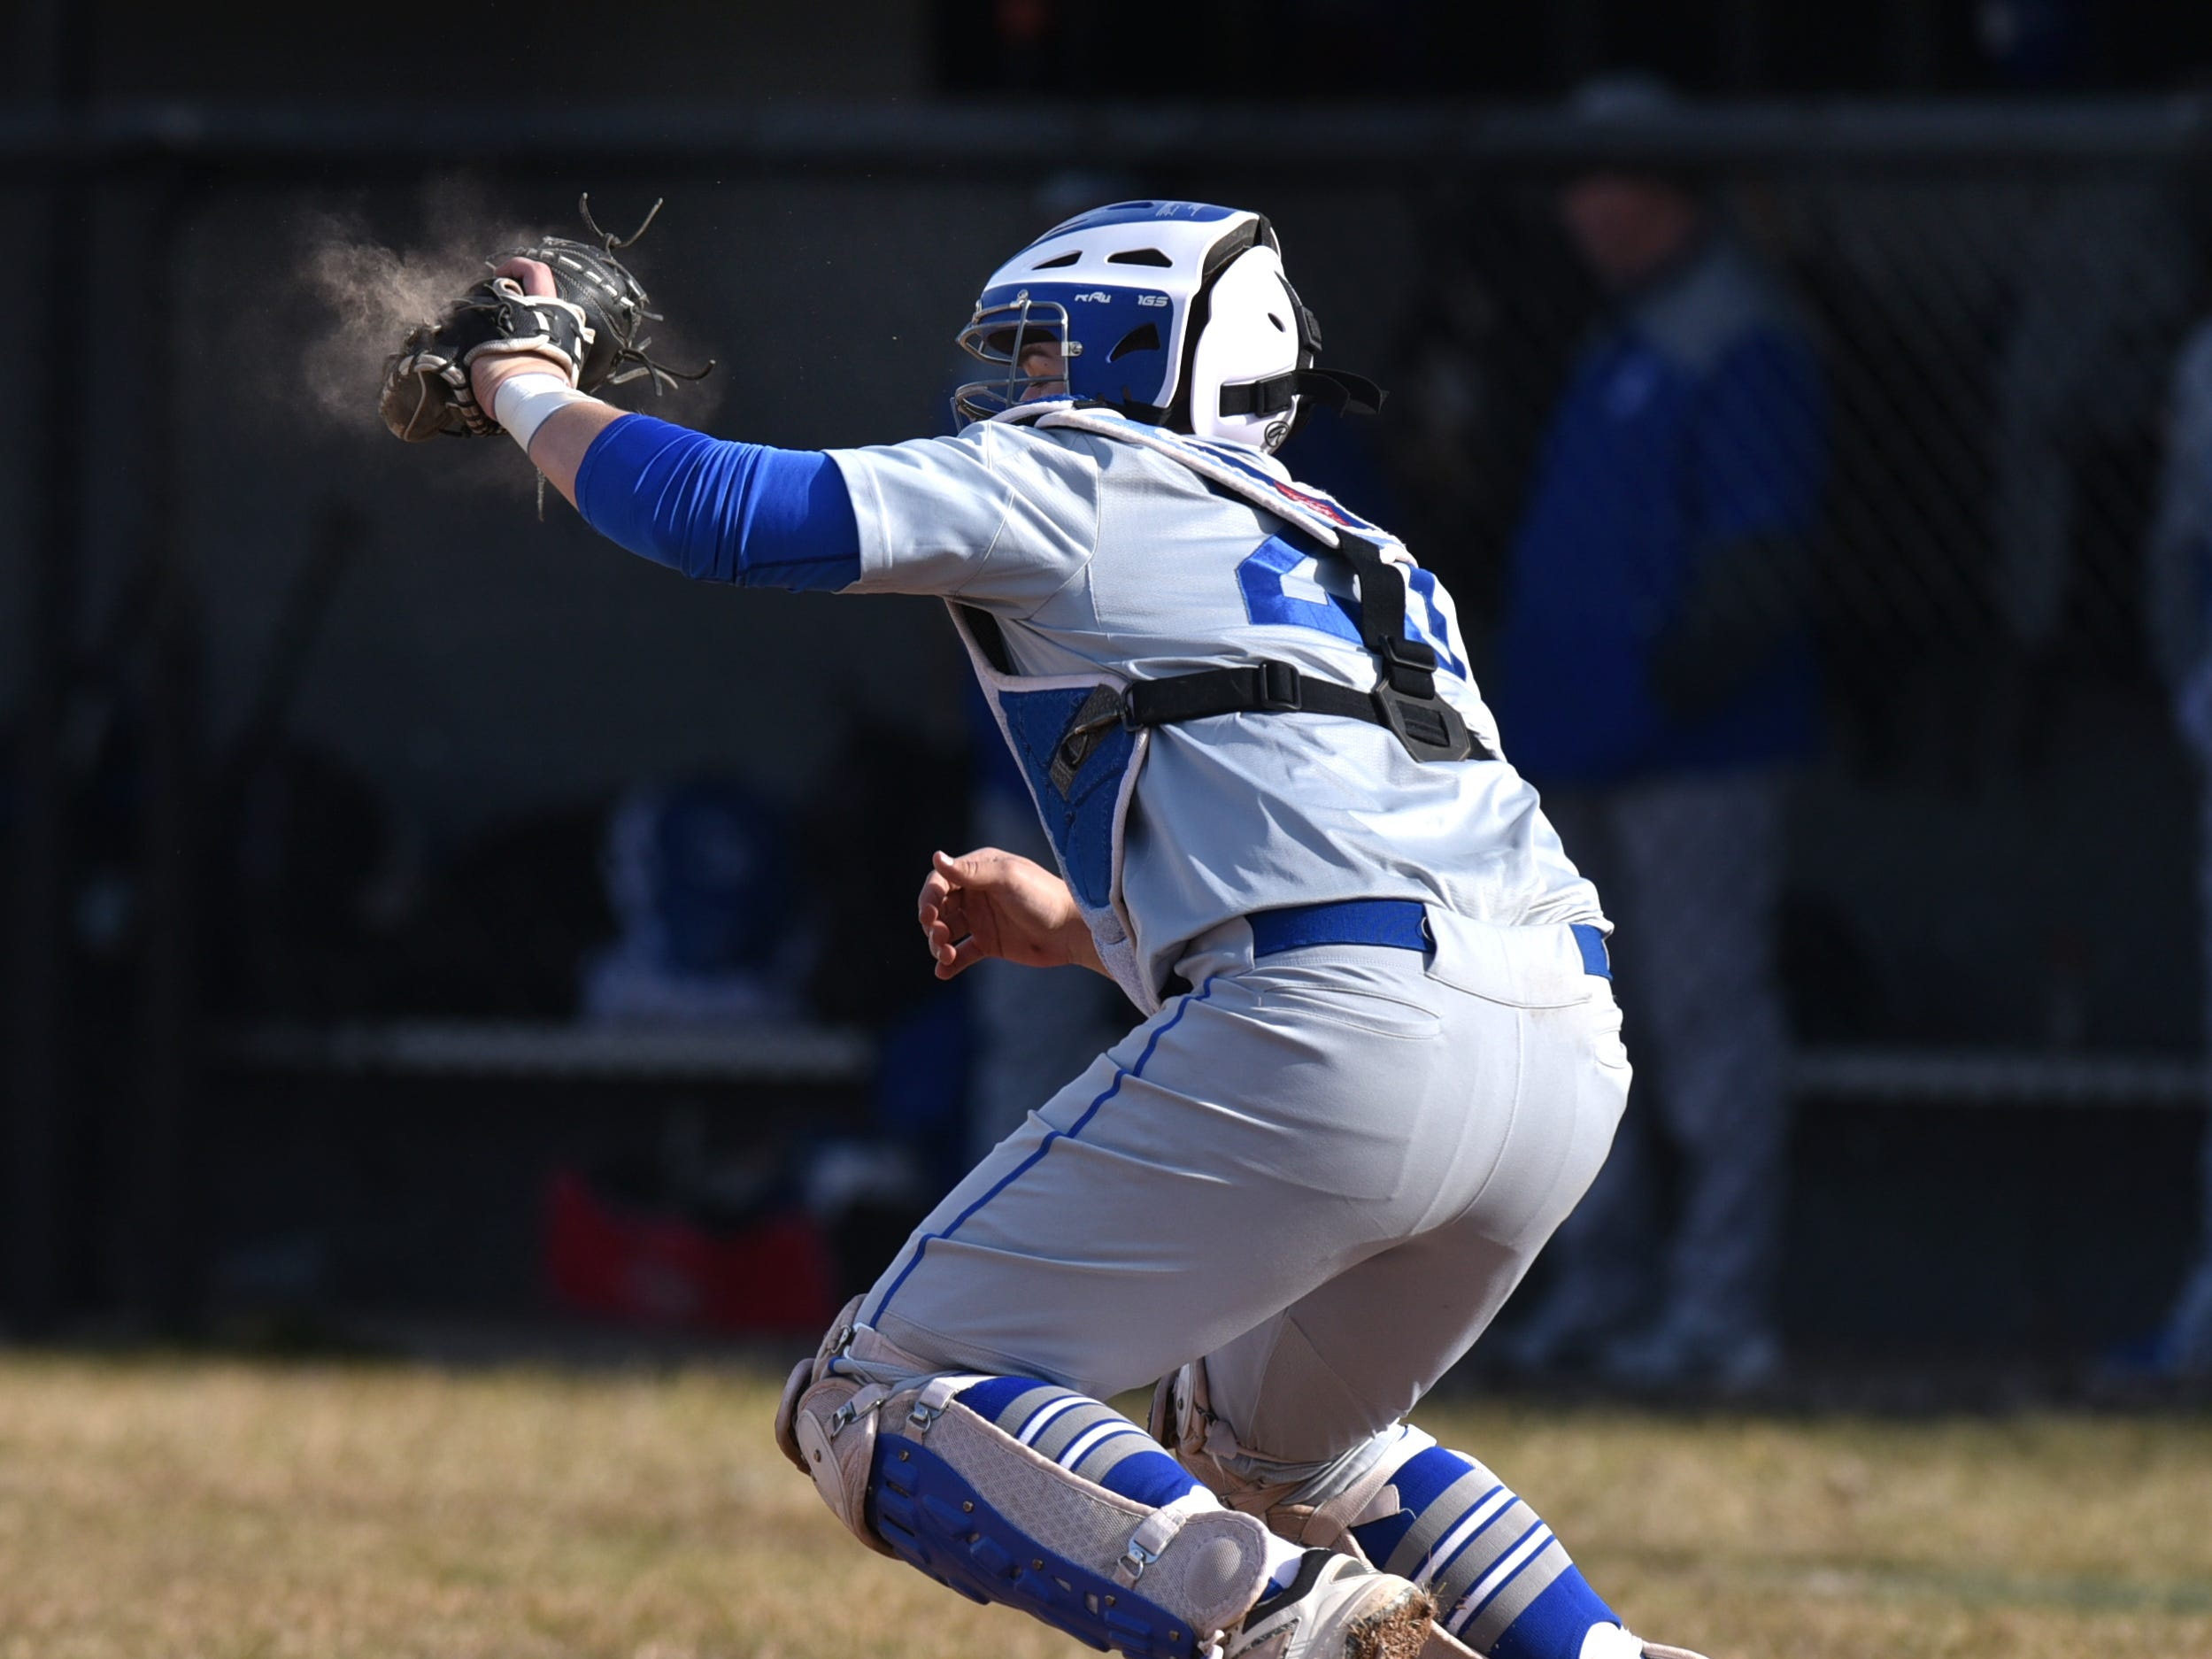 Salem High catcher Tyler Overaitis snaps a pitch into his glove as a small cloud of dust appears.